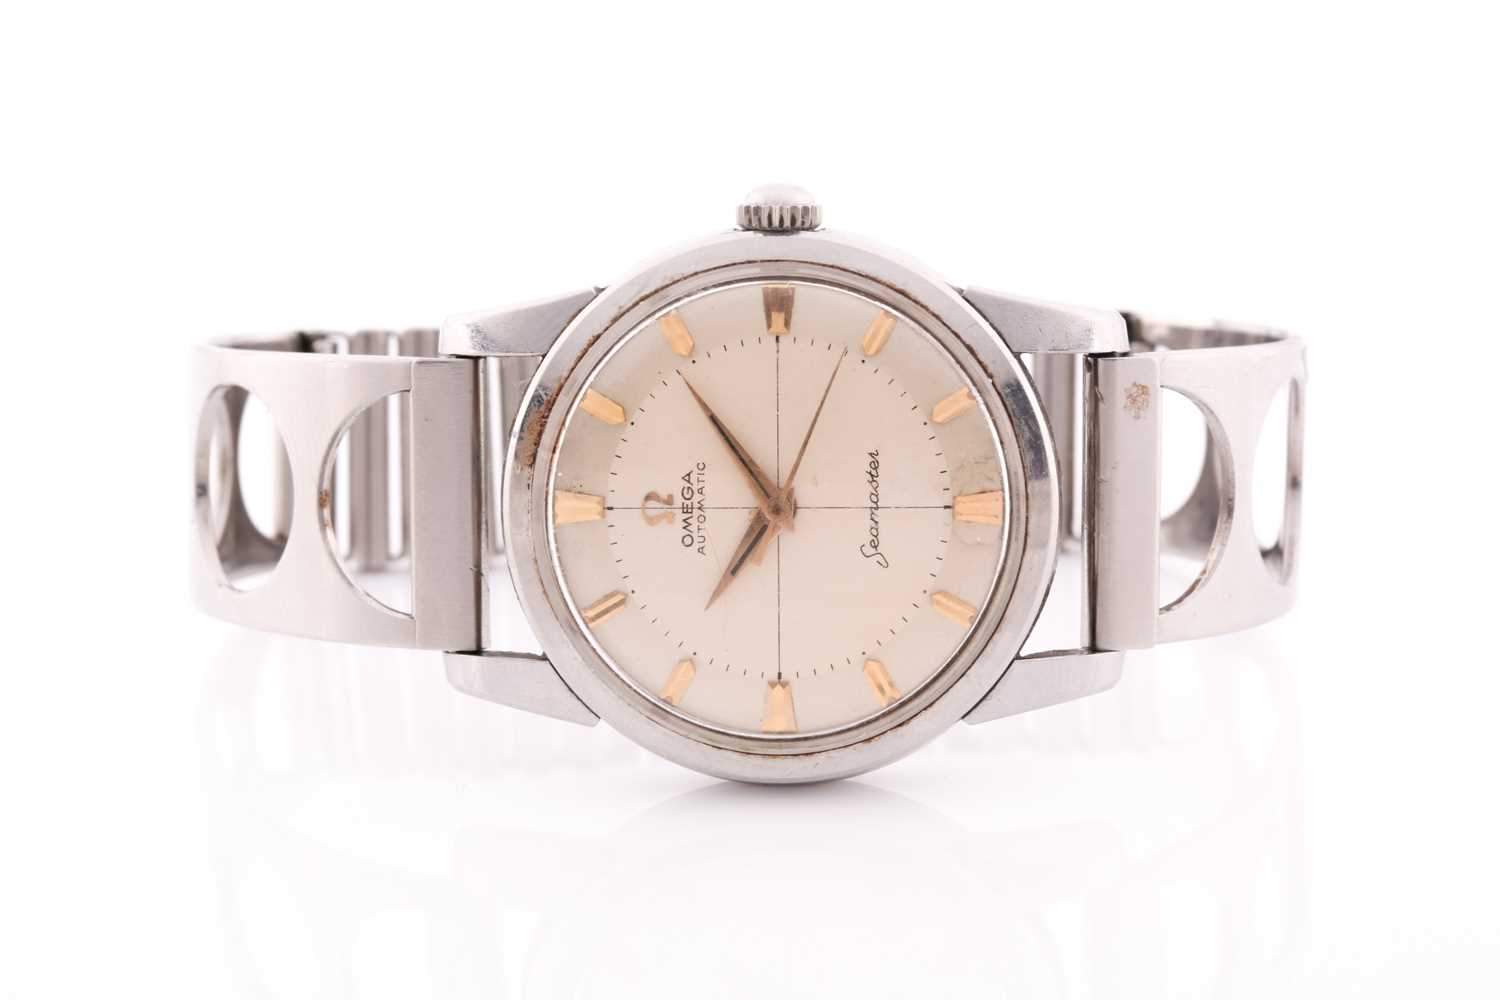 An Omega Seamaster automatic stainless steel wristwatch, the silvered dial with gilt baton